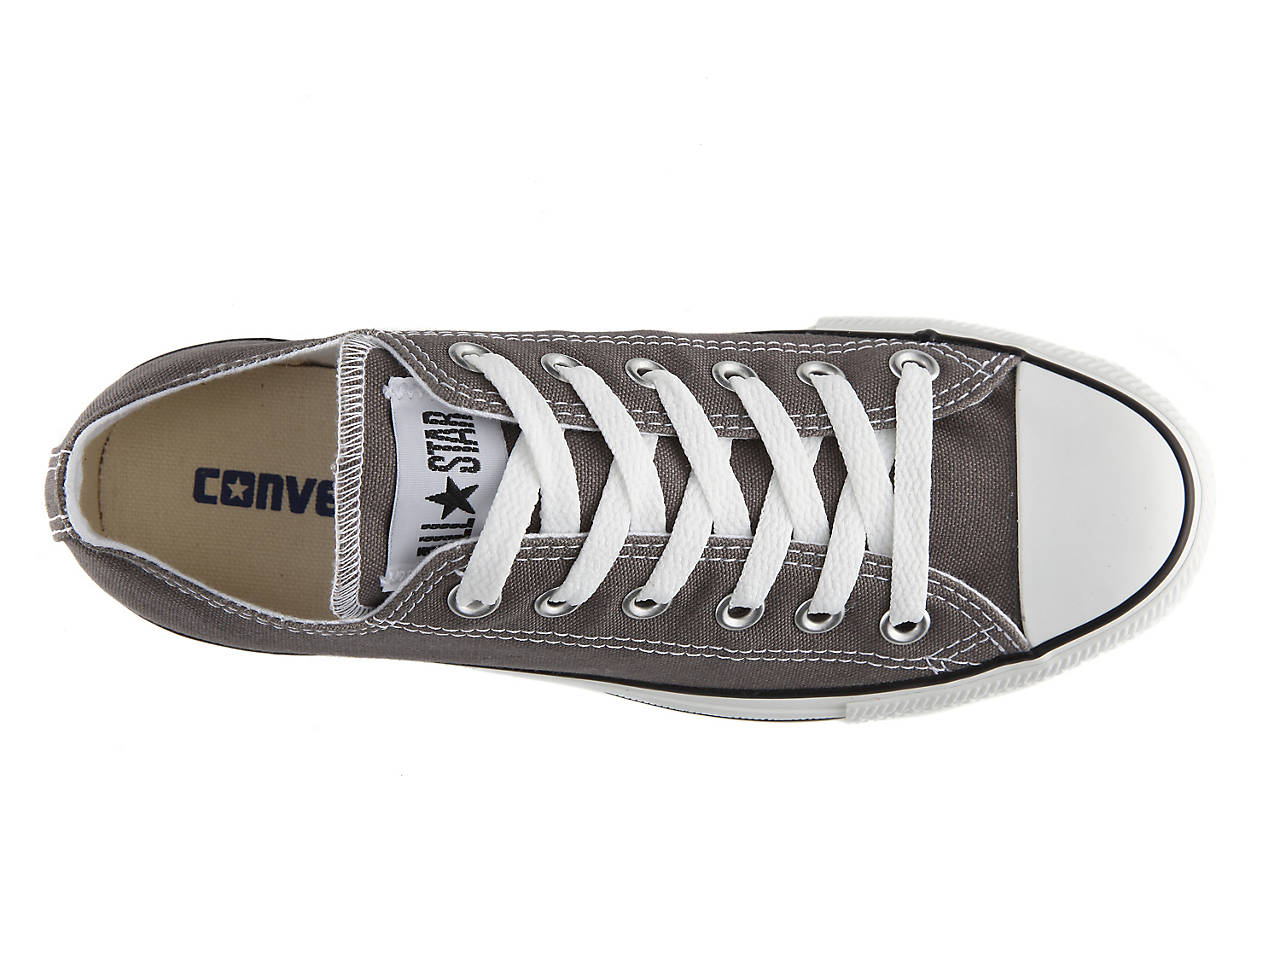 converse shoes at dsw